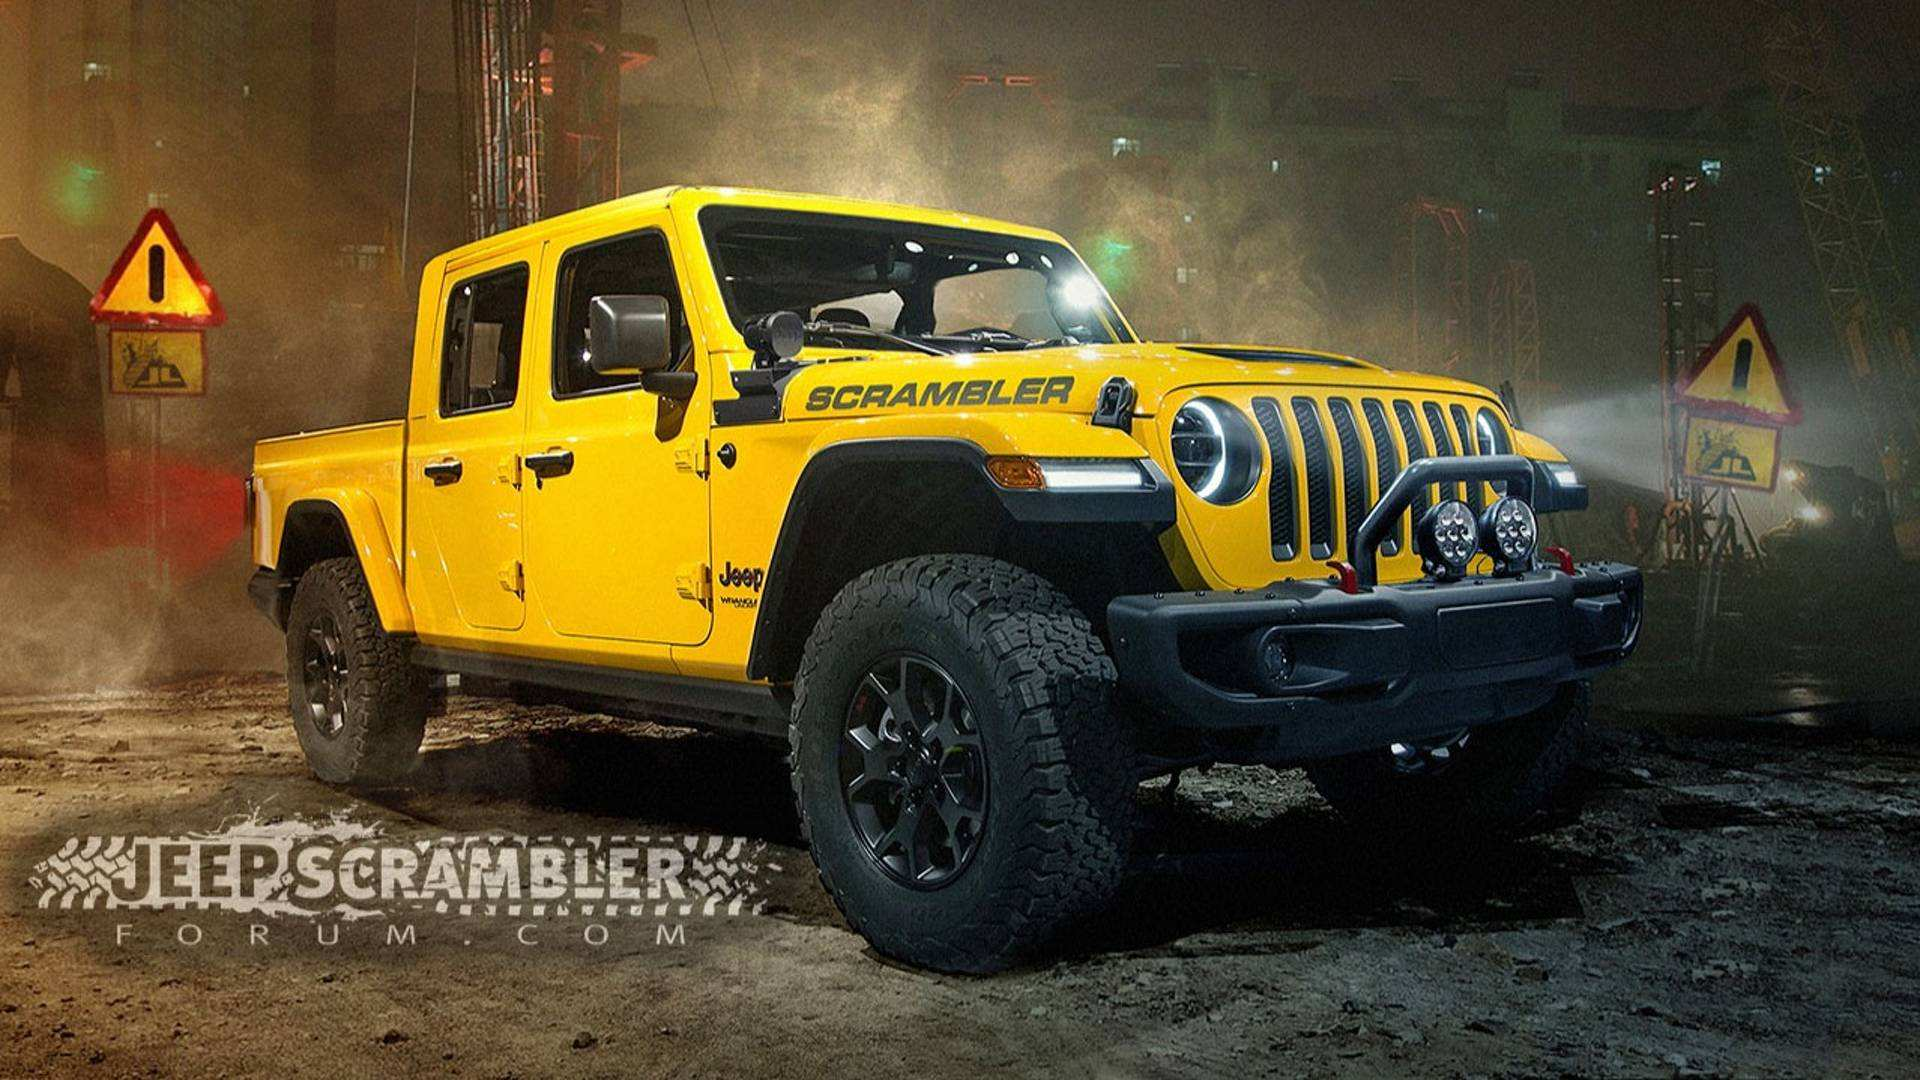 41 Great Jeep Rubicon Truck 2020 Photos with Jeep Rubicon Truck 2020